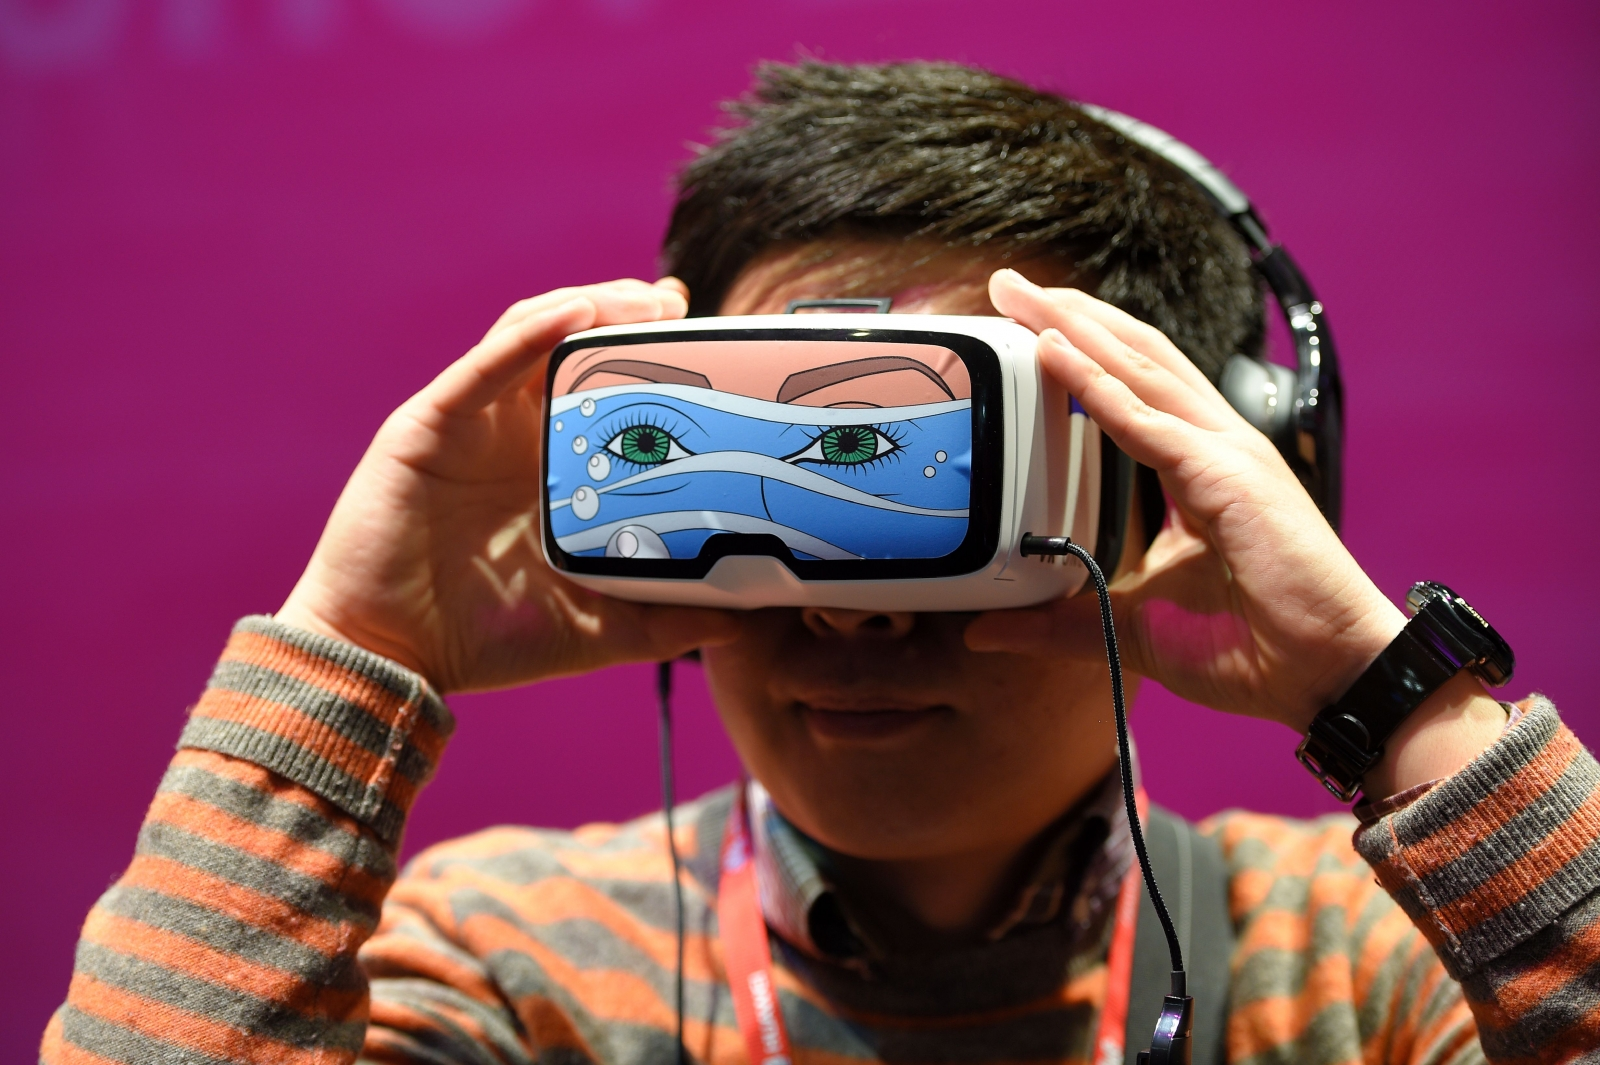 A child uses VR headset